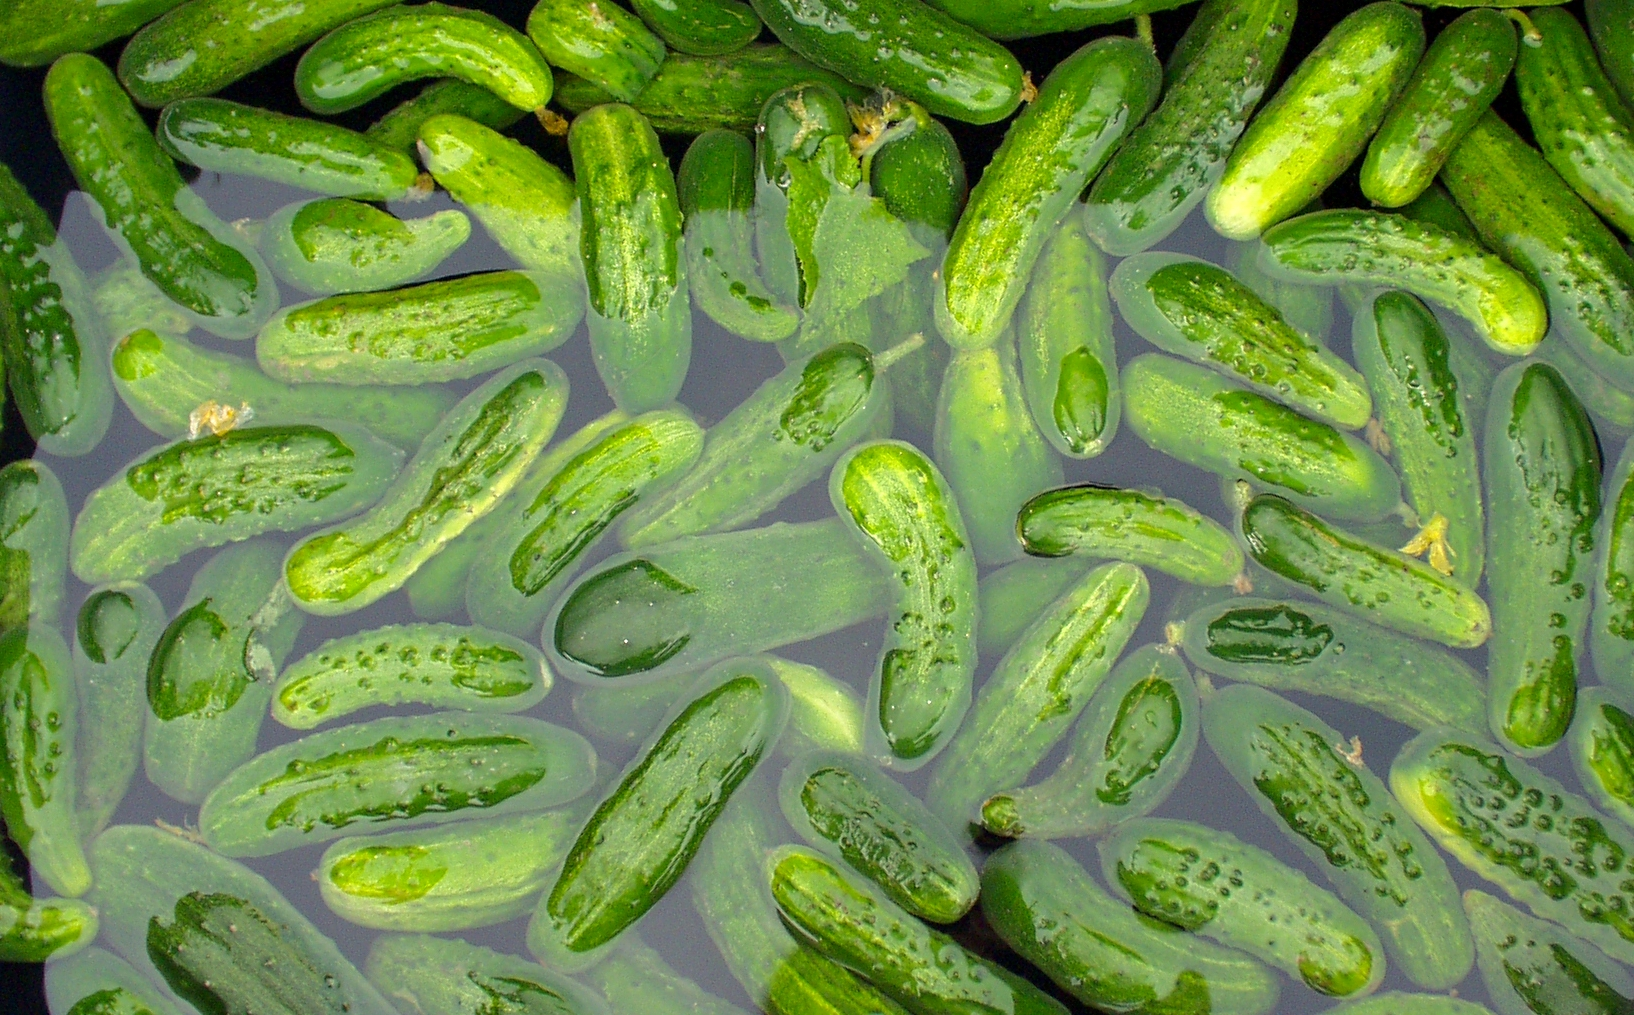 Pickling cukes from Alm Hill. Photo copyright 2009 by Zachary D. Lyons.